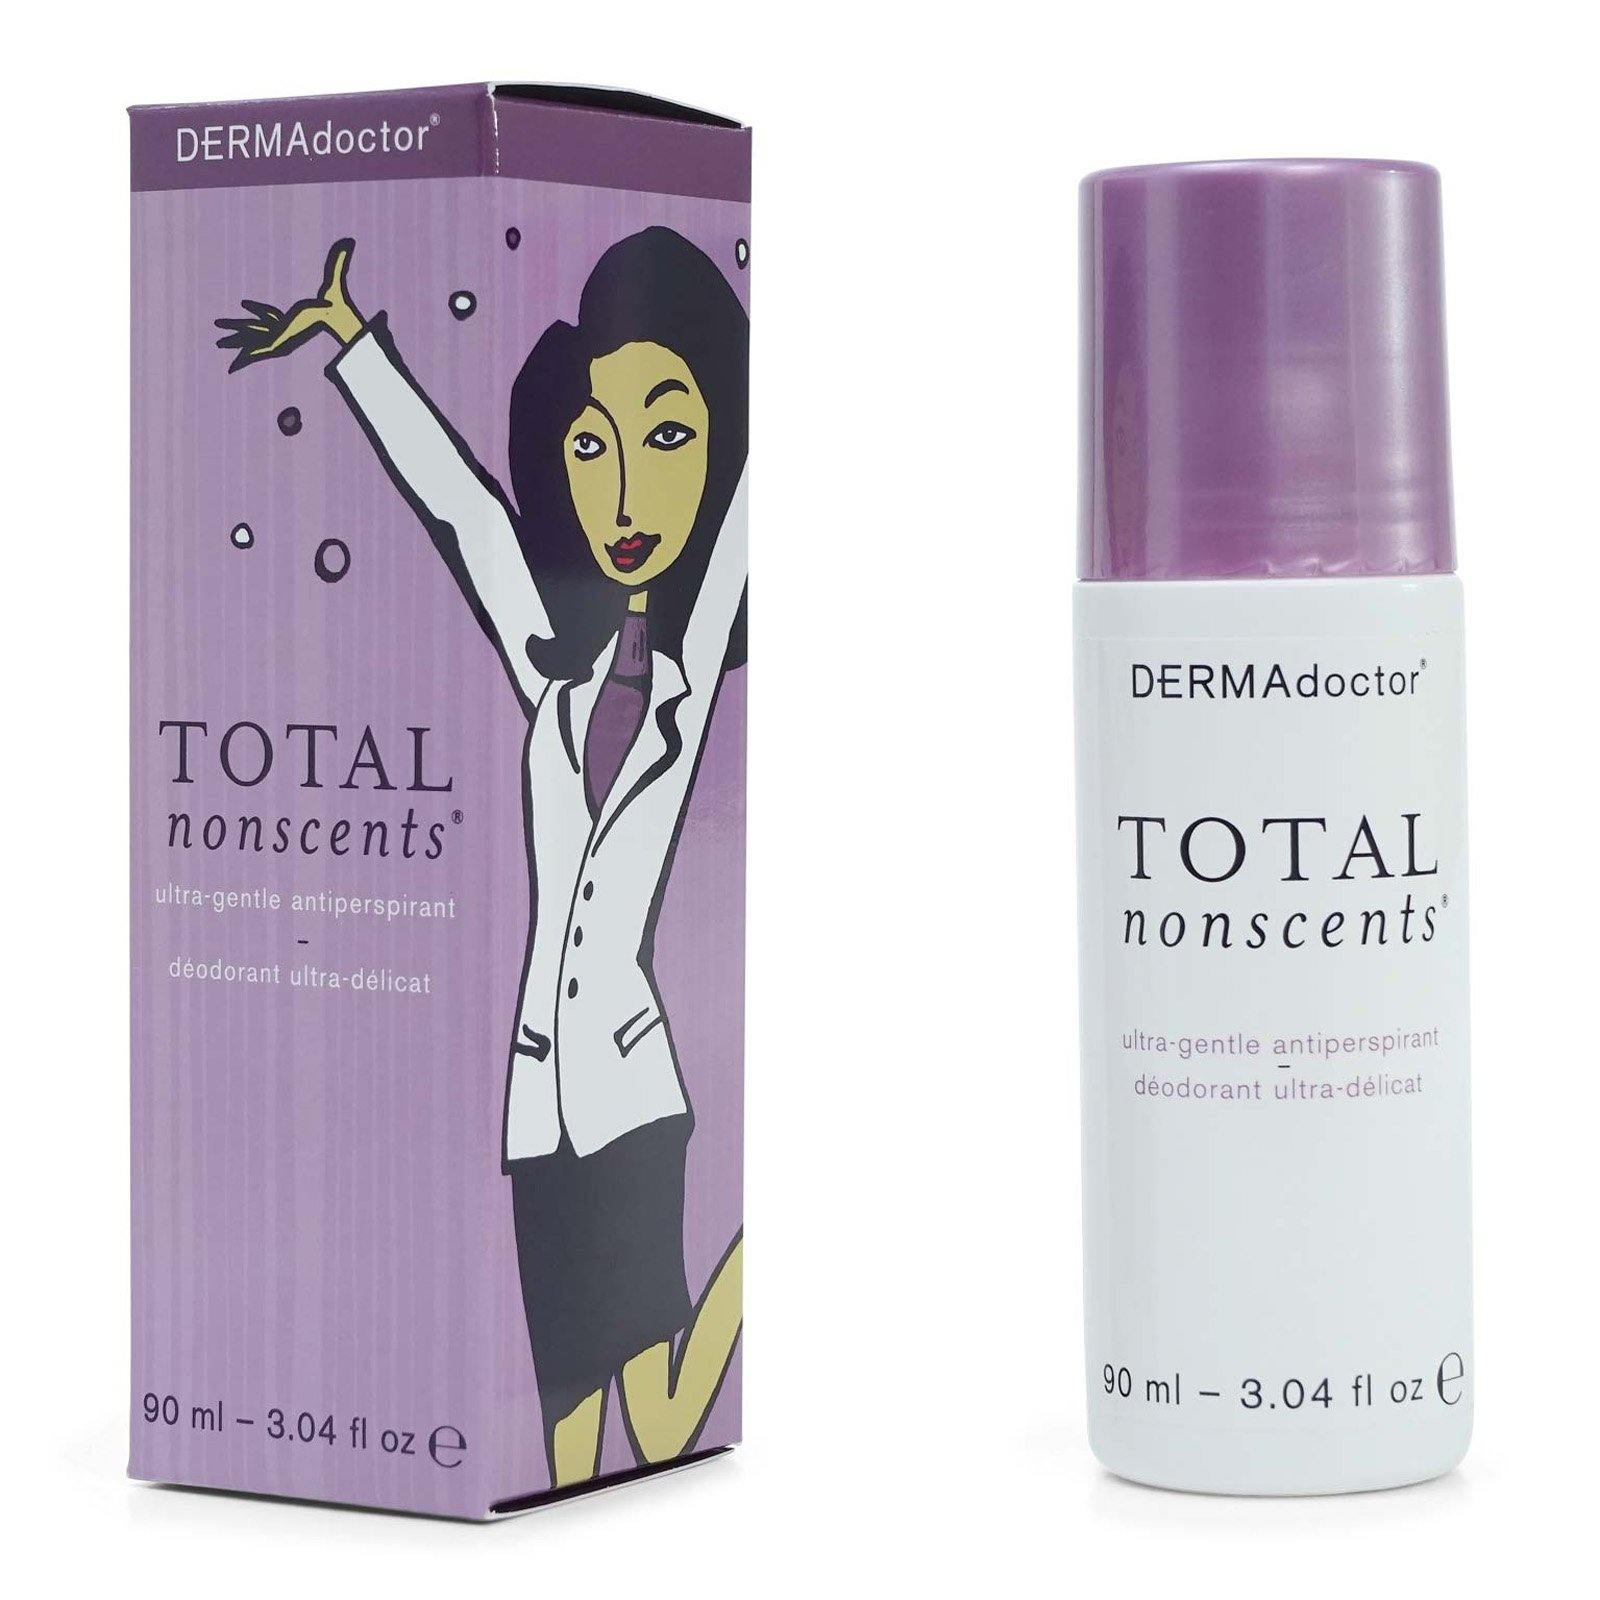 DermaDoctor Total Nonscents Ultra Gentle Antiperspirant - Quick-drying formula for eczema, atopic or contact dermatitis. (12/cs)